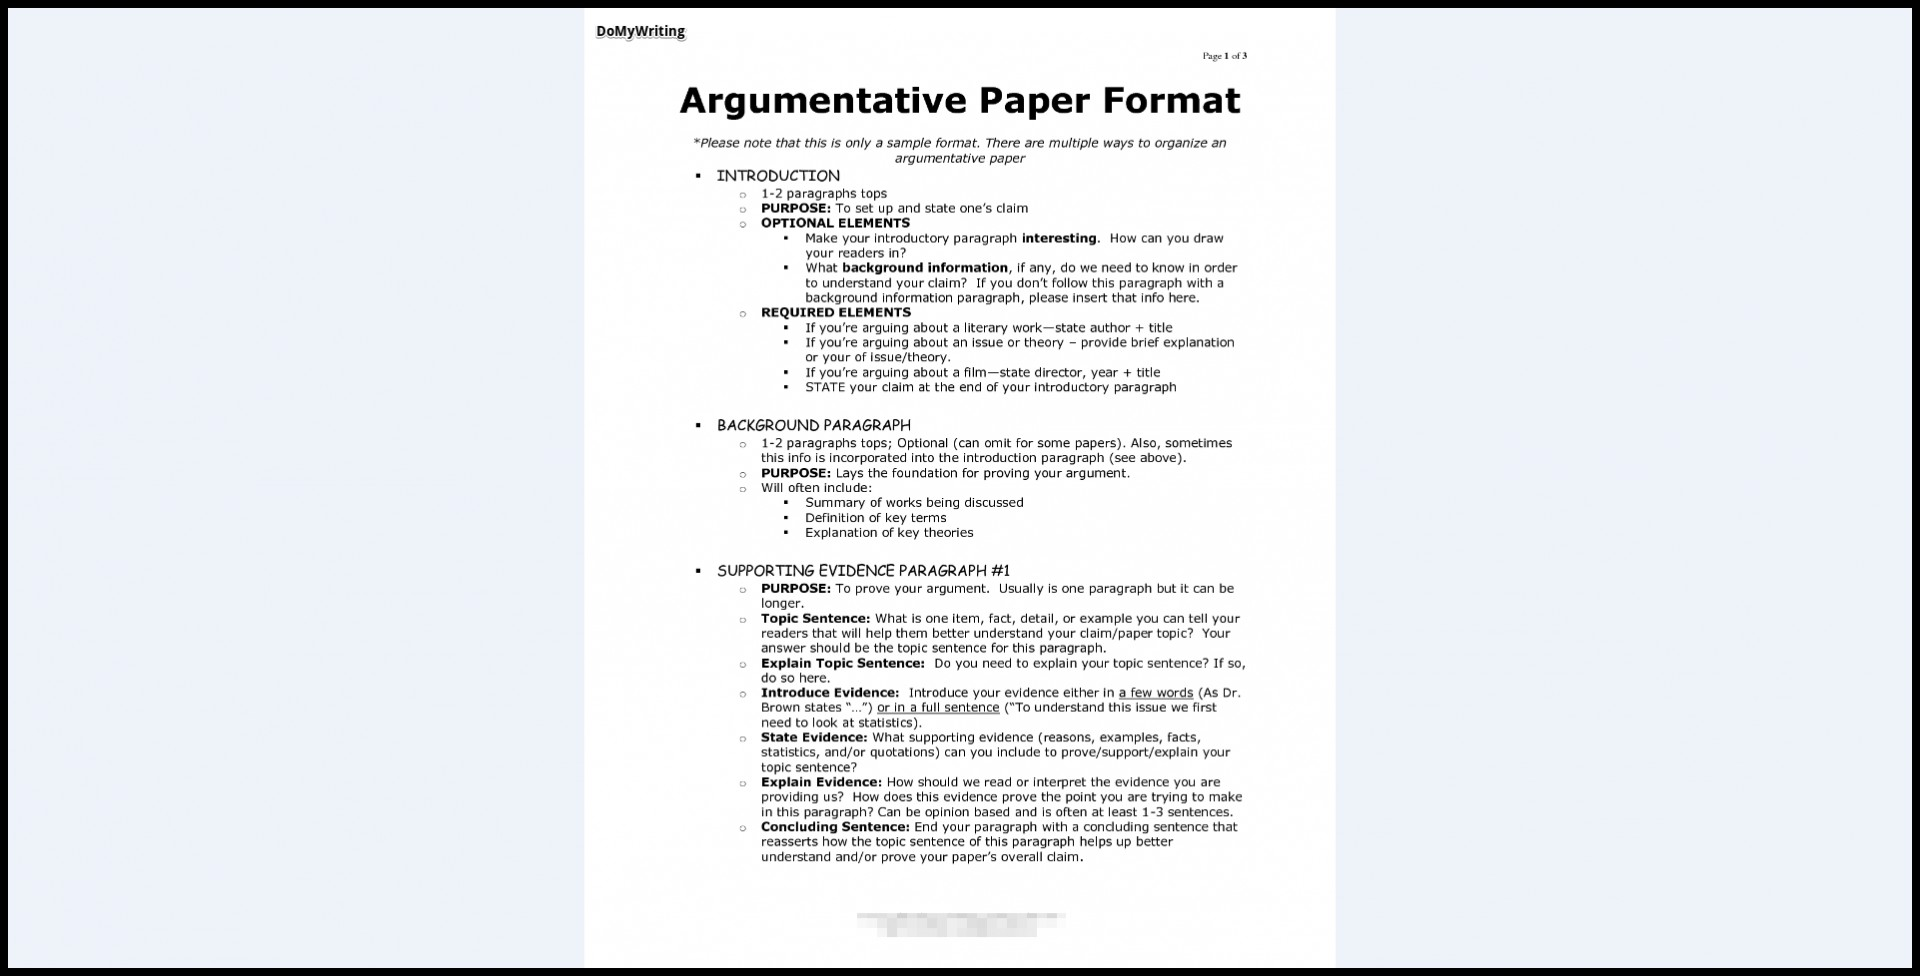 016 Argumentative Research Paper Topics College Essay Magnificent Topic Ideas For Students 1920